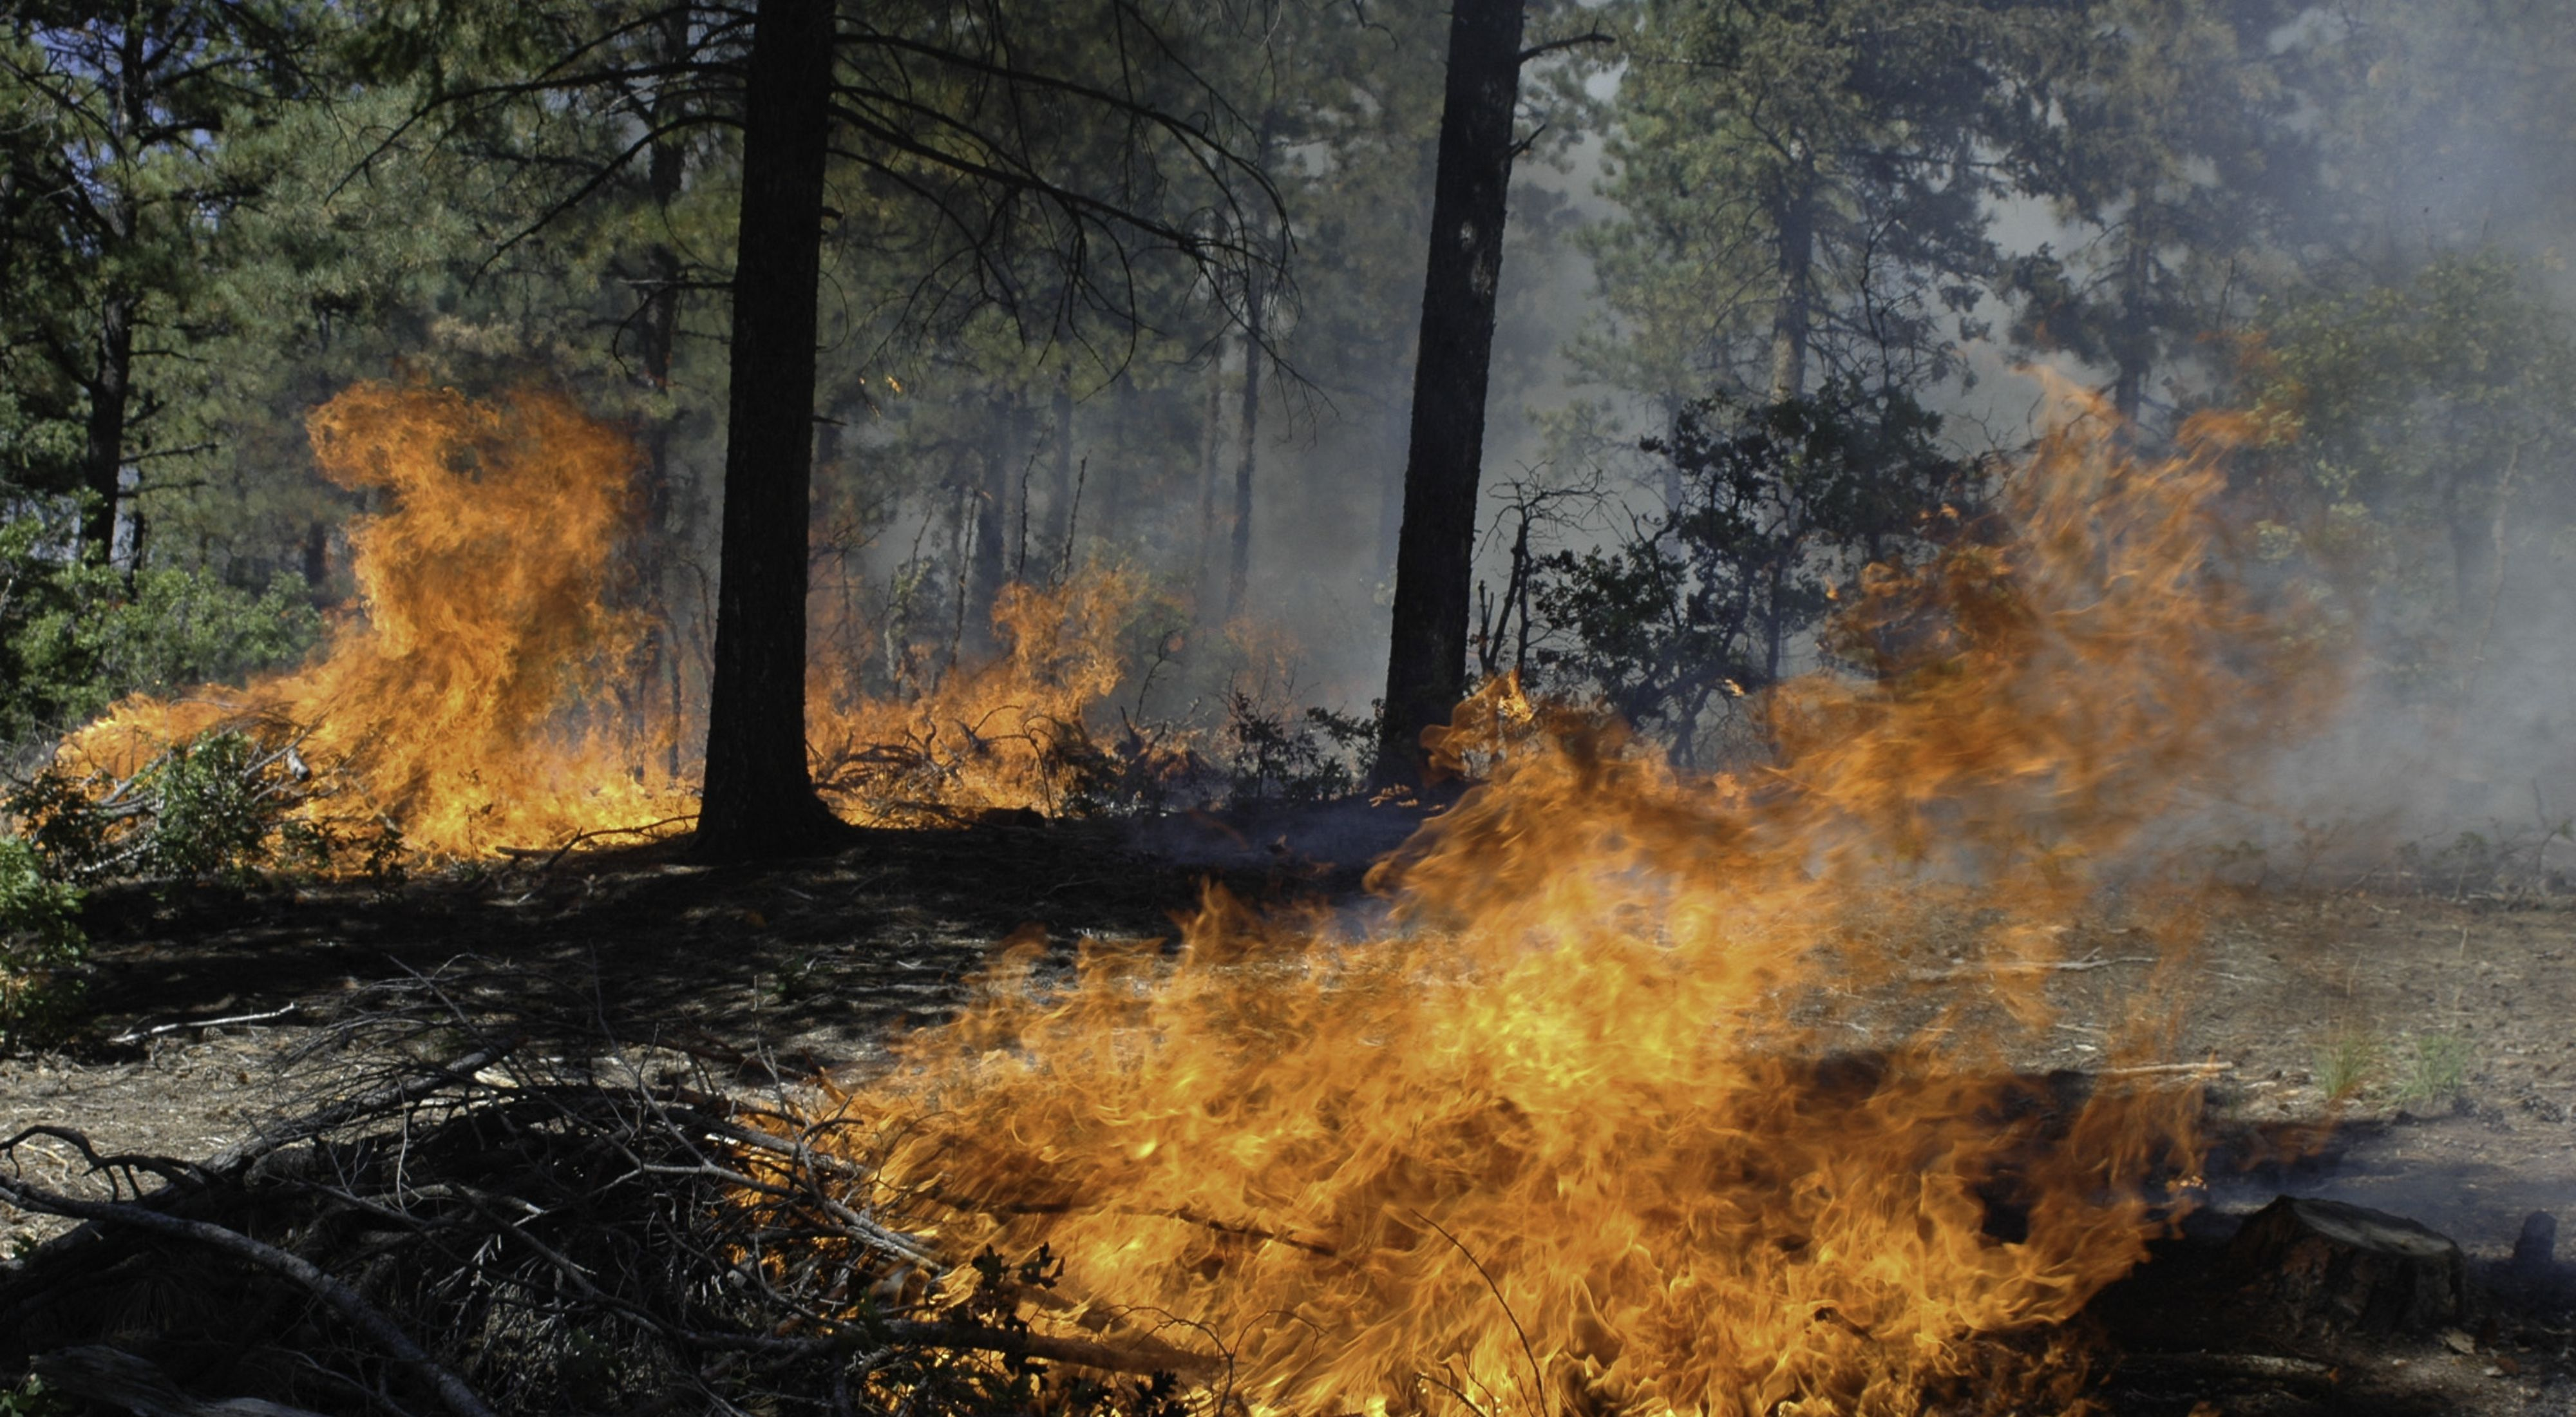 Controlled fire burns in forest.